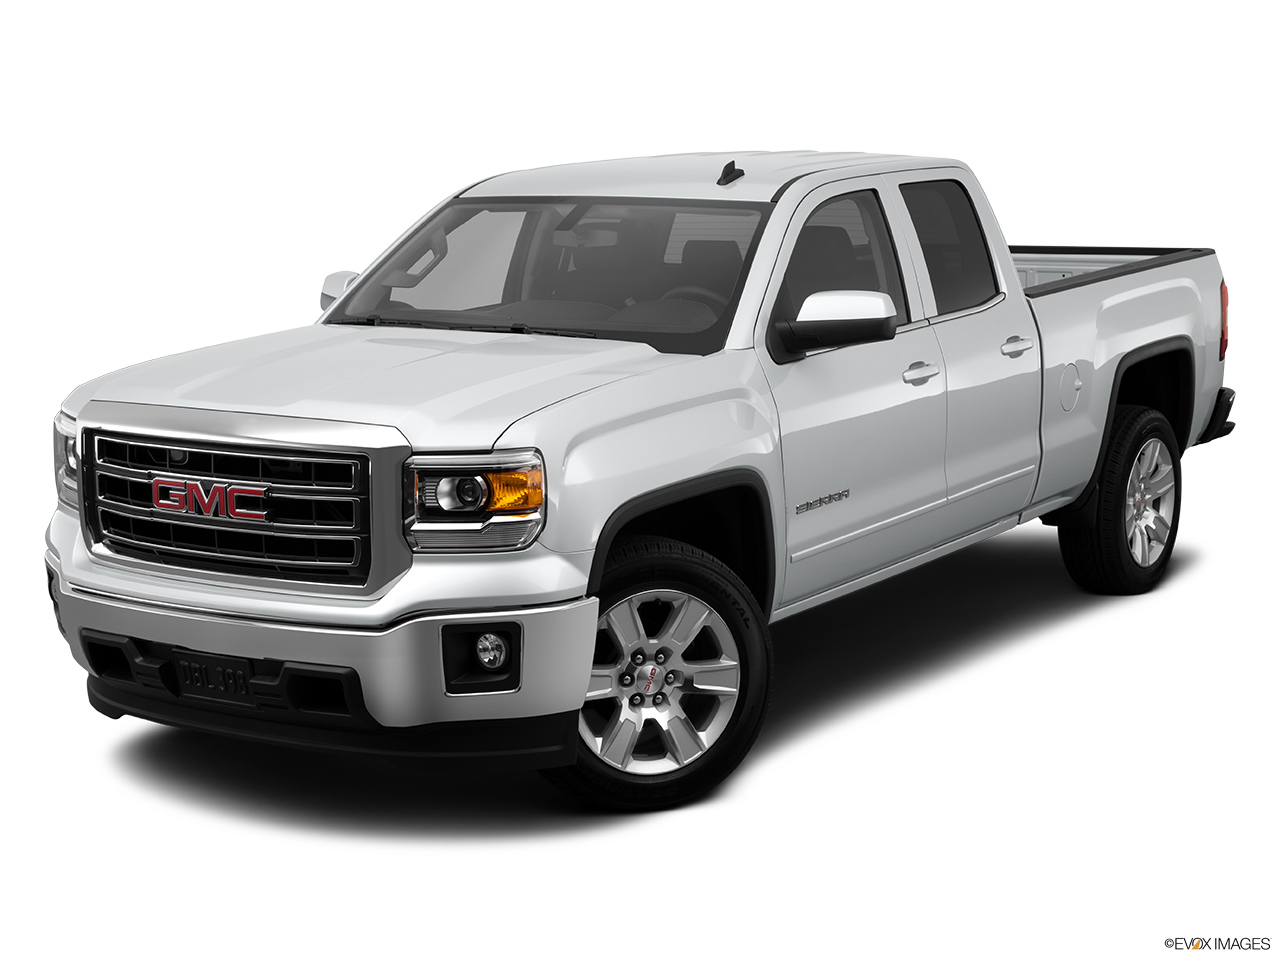 2014 gmc sierra 1500 2wd double cab 143 5 slt. Black Bedroom Furniture Sets. Home Design Ideas